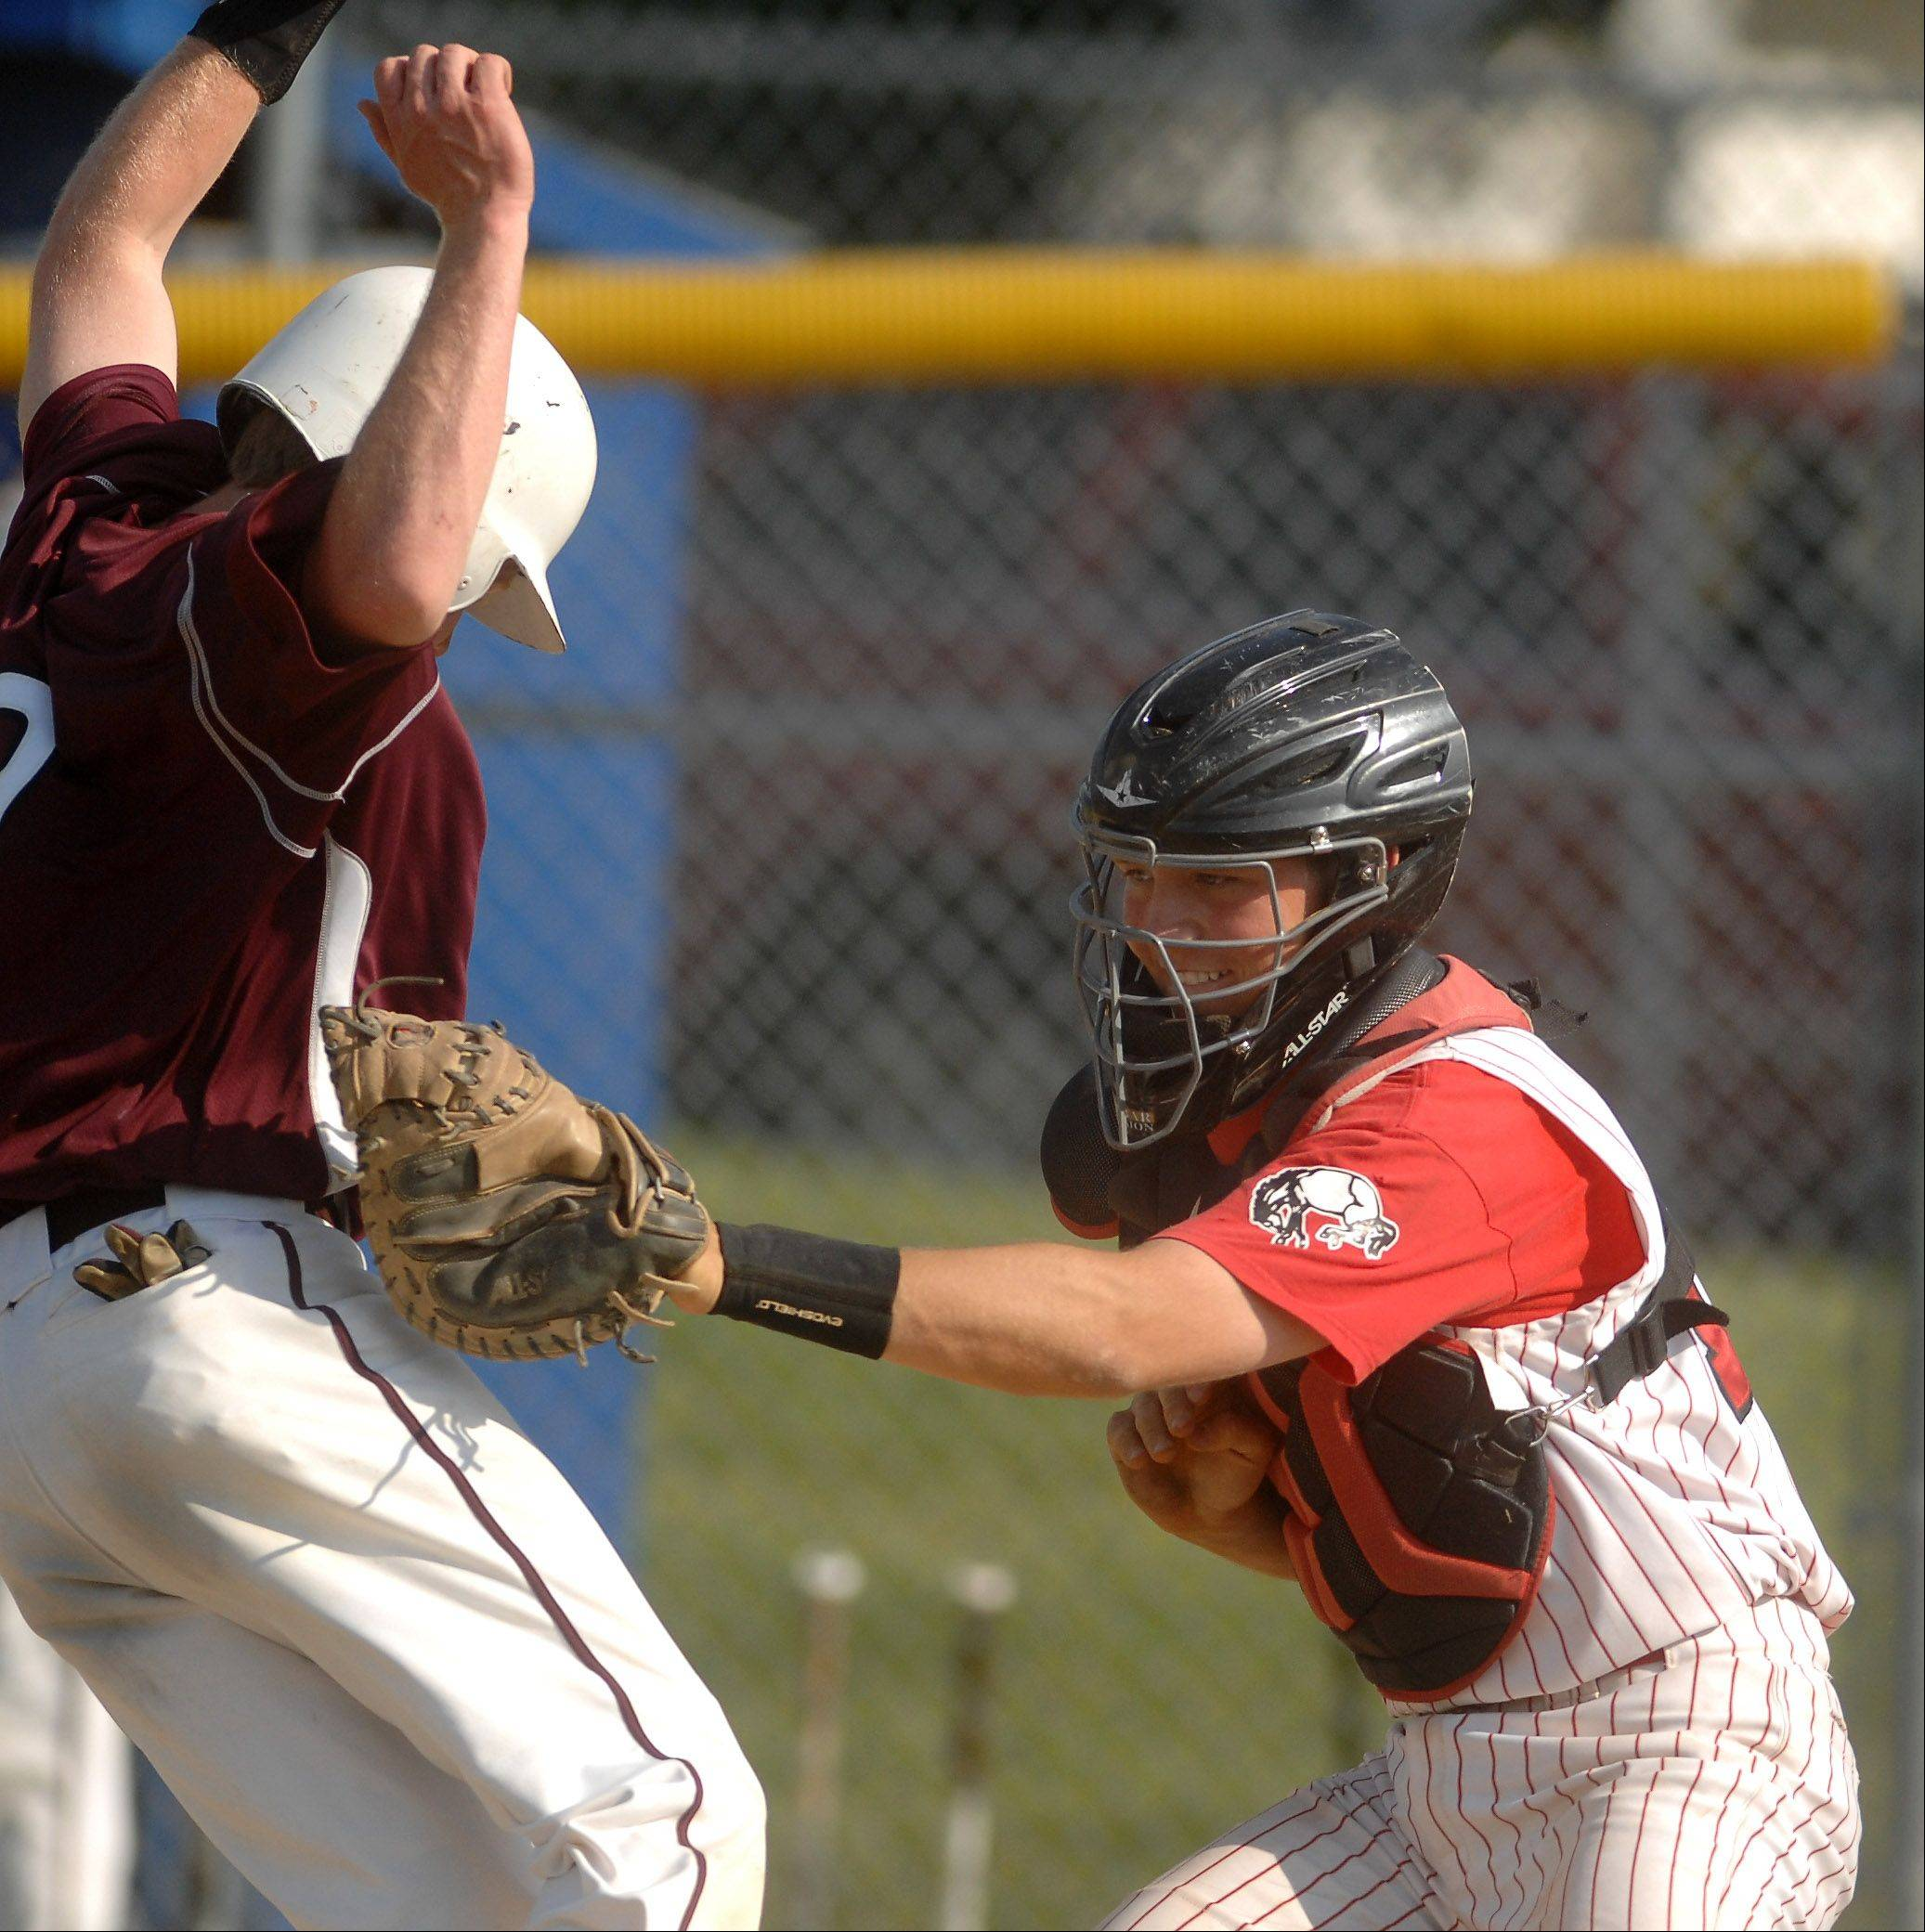 Barrington catcher Ryan Lidge tags out Elgin's Andrew Higdon at the plate during the regional semifinals at Larkin High School in Elgin Thursday.